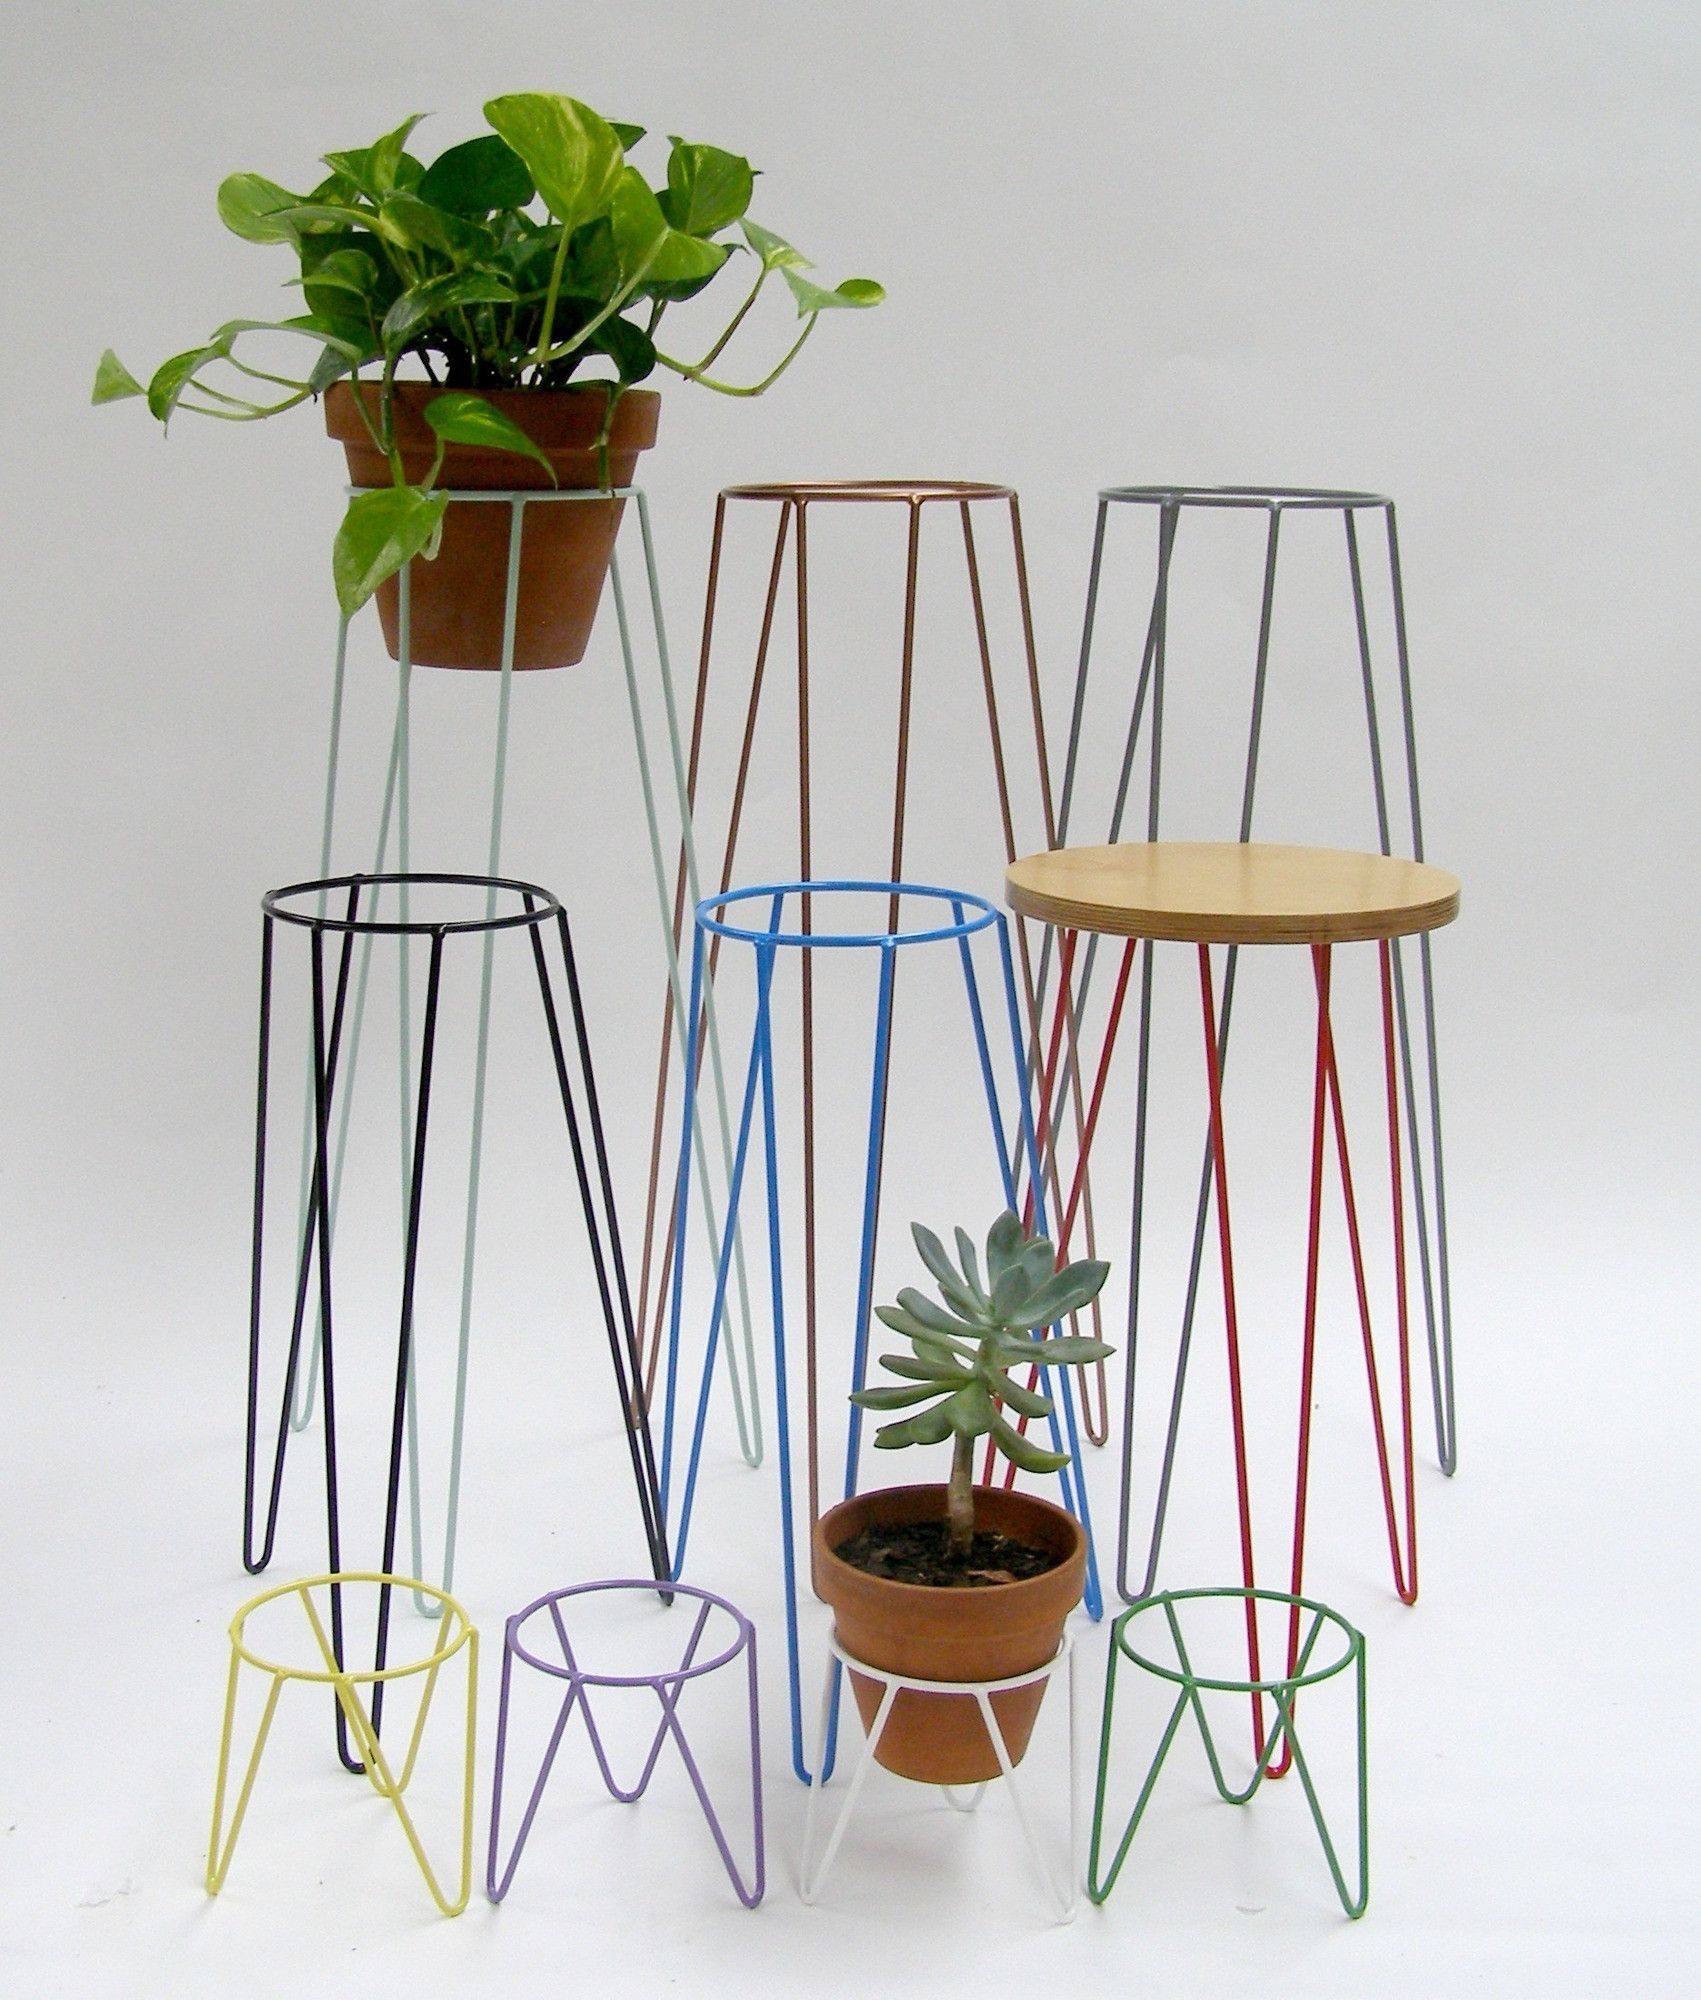 Mid Century Inspired Metal Plant Stands For Indoor And Outdoor Use Available In Copper White Black Blue Grey Mint Sizes Lge 75x 37cm Ring 20cm Std